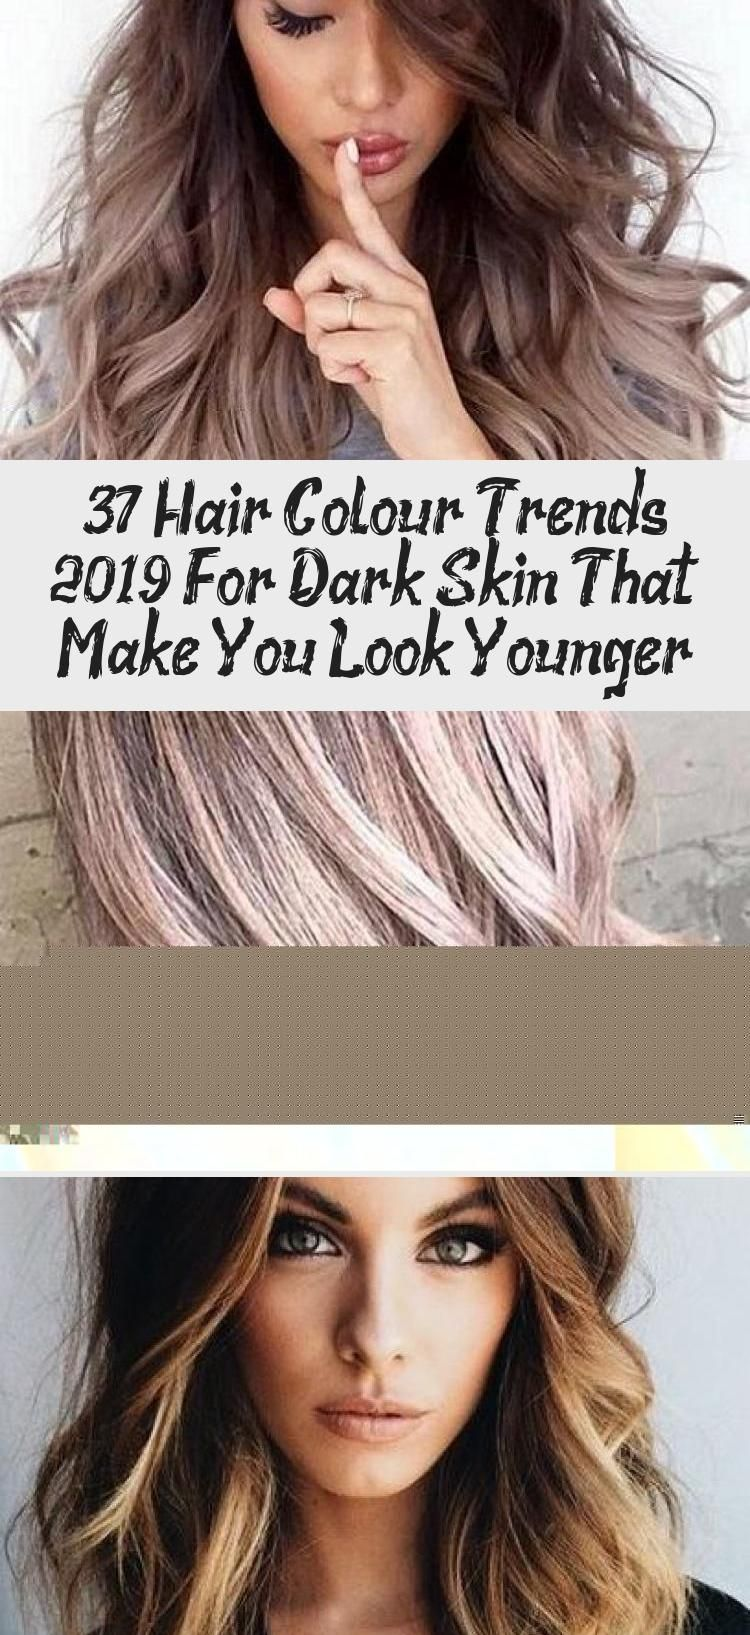 37 Hair Colour Trends 2019 For Dark Skin That Make You Look Younger Younger Hair Hair Color Trends Hair Color